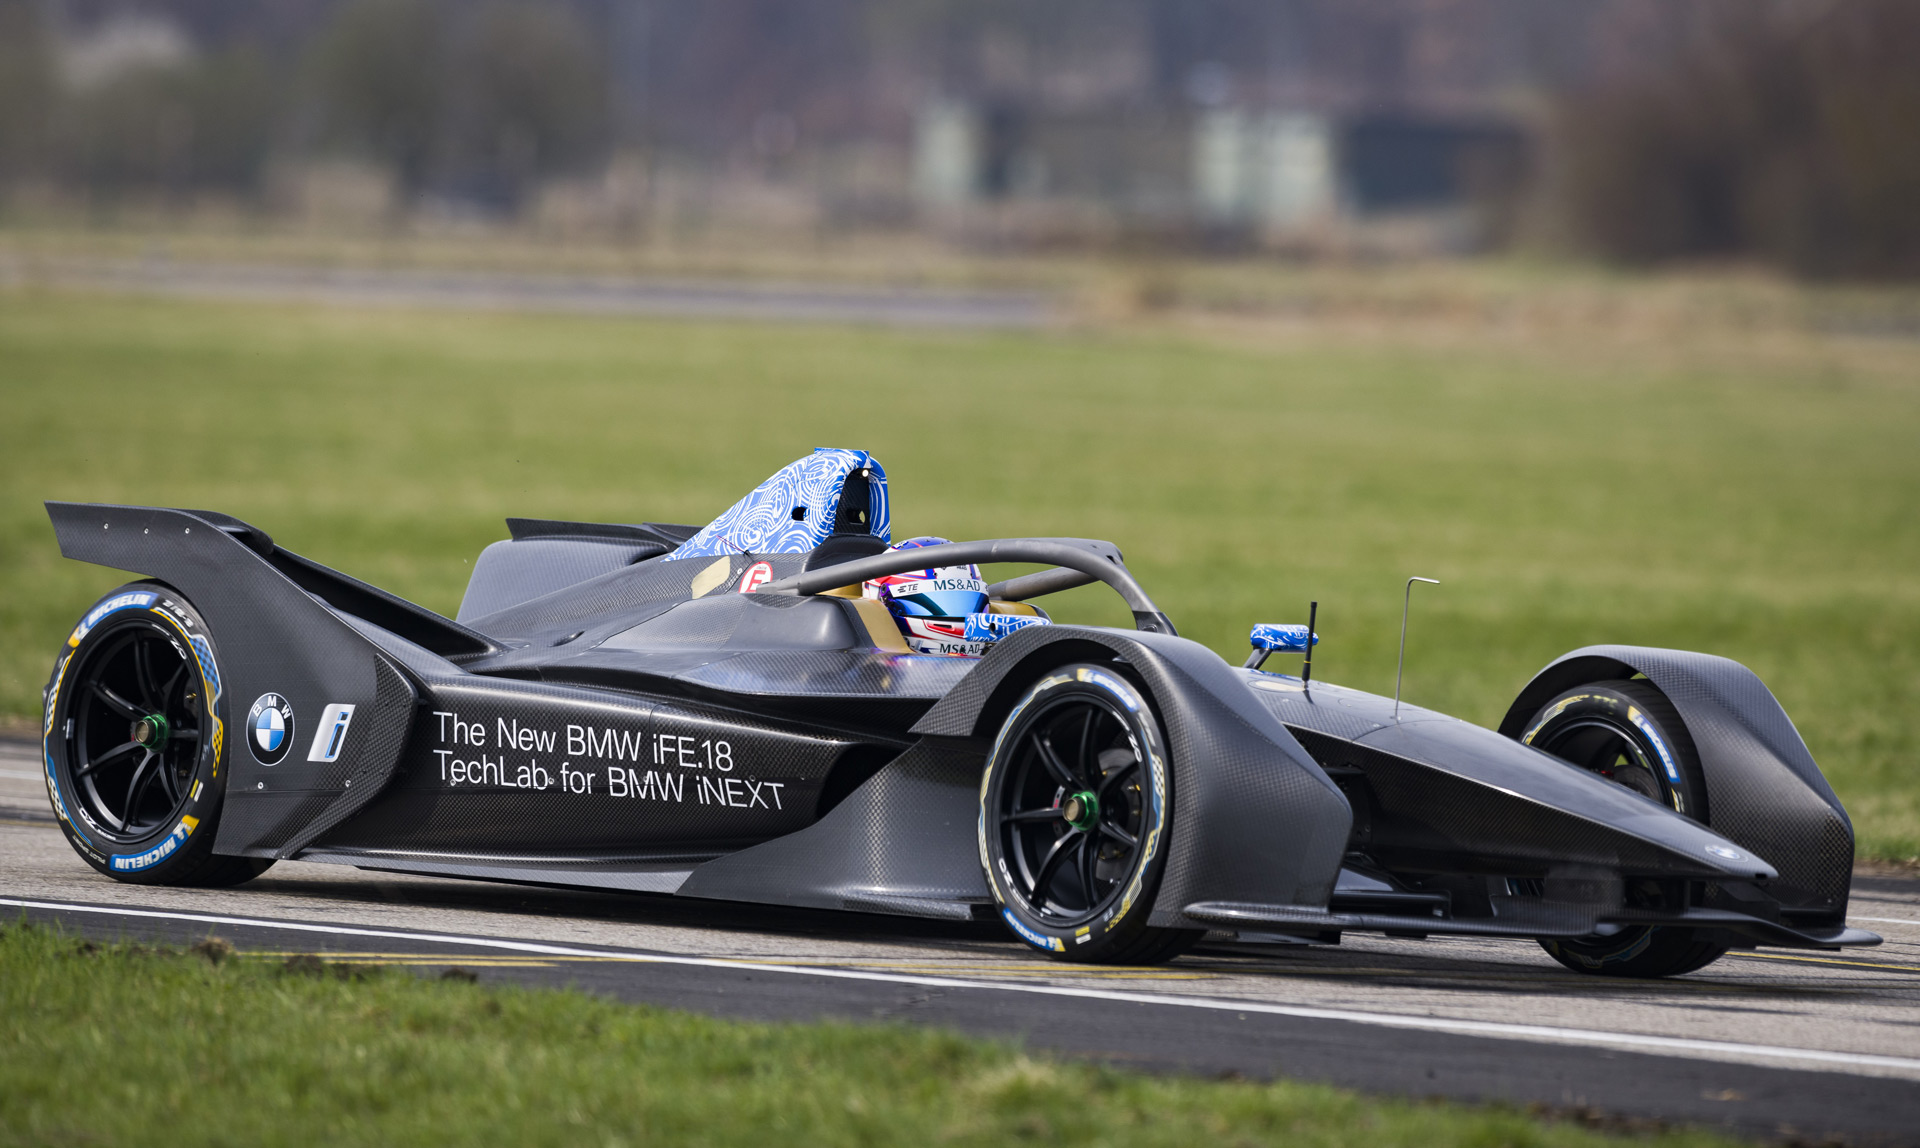 bmw completes initial shakedown for formula e racer. Black Bedroom Furniture Sets. Home Design Ideas